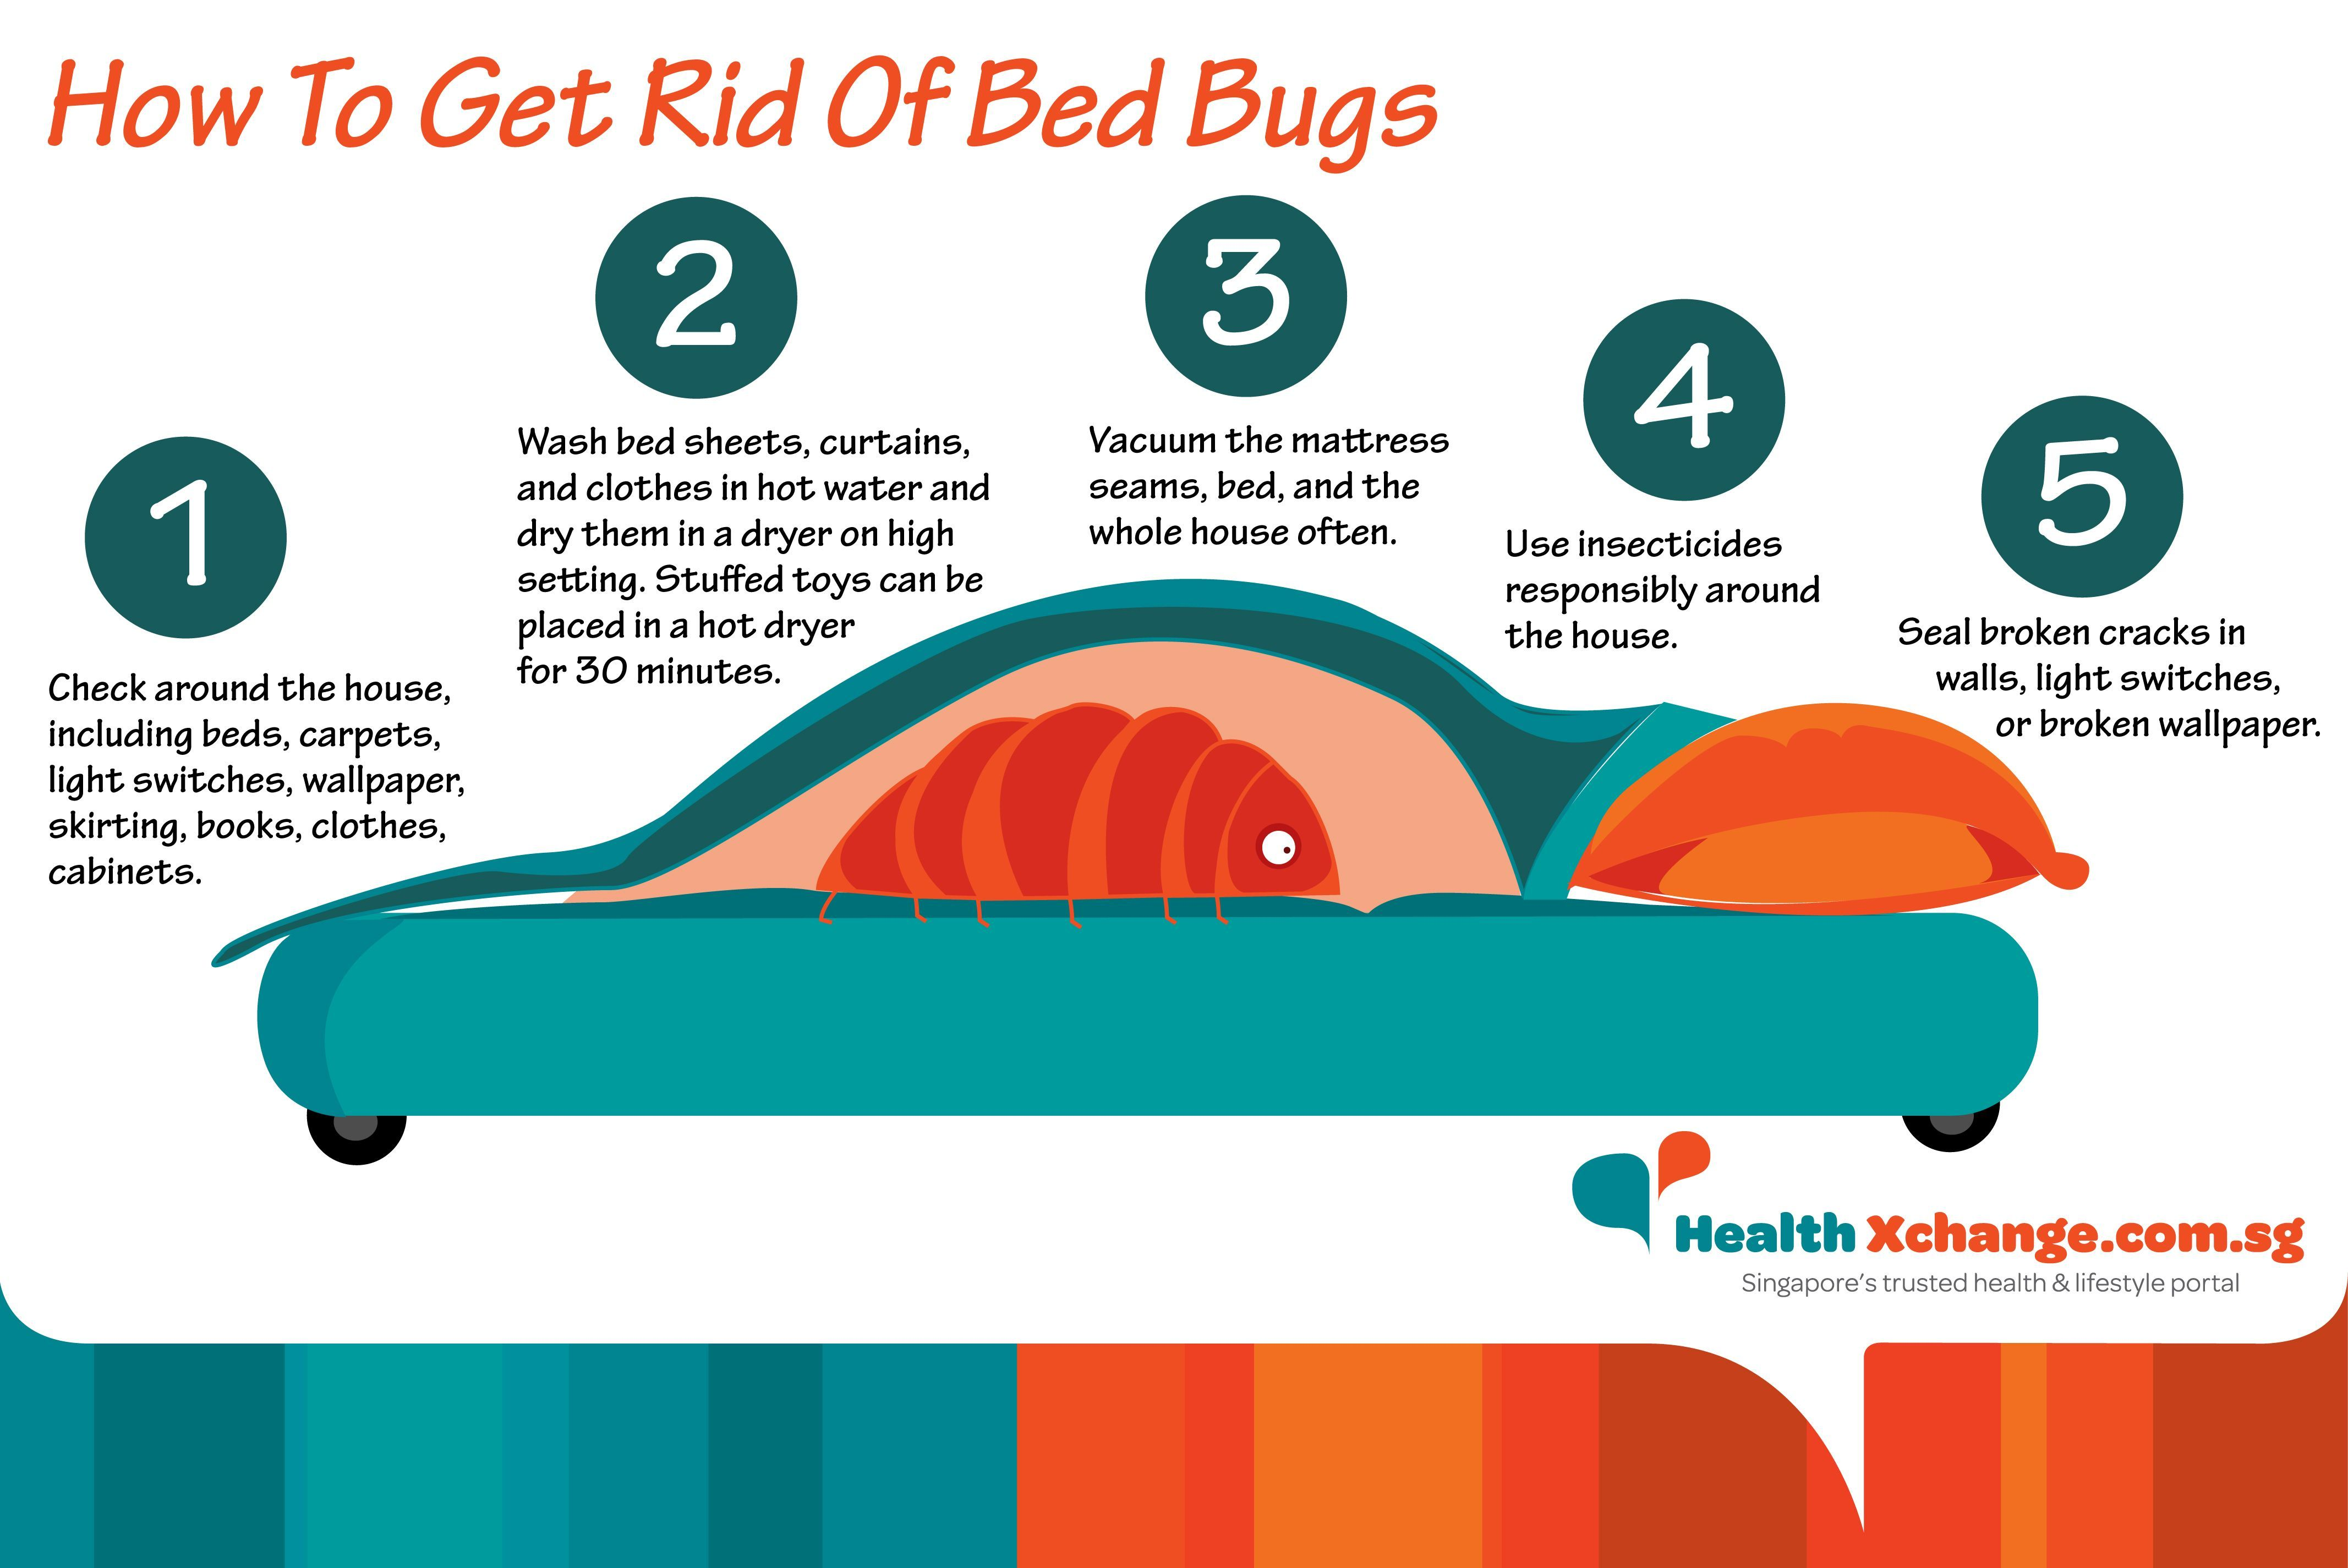 How To Get Rid Of Bed Bugs Bed bugs, Rid of bed bugs